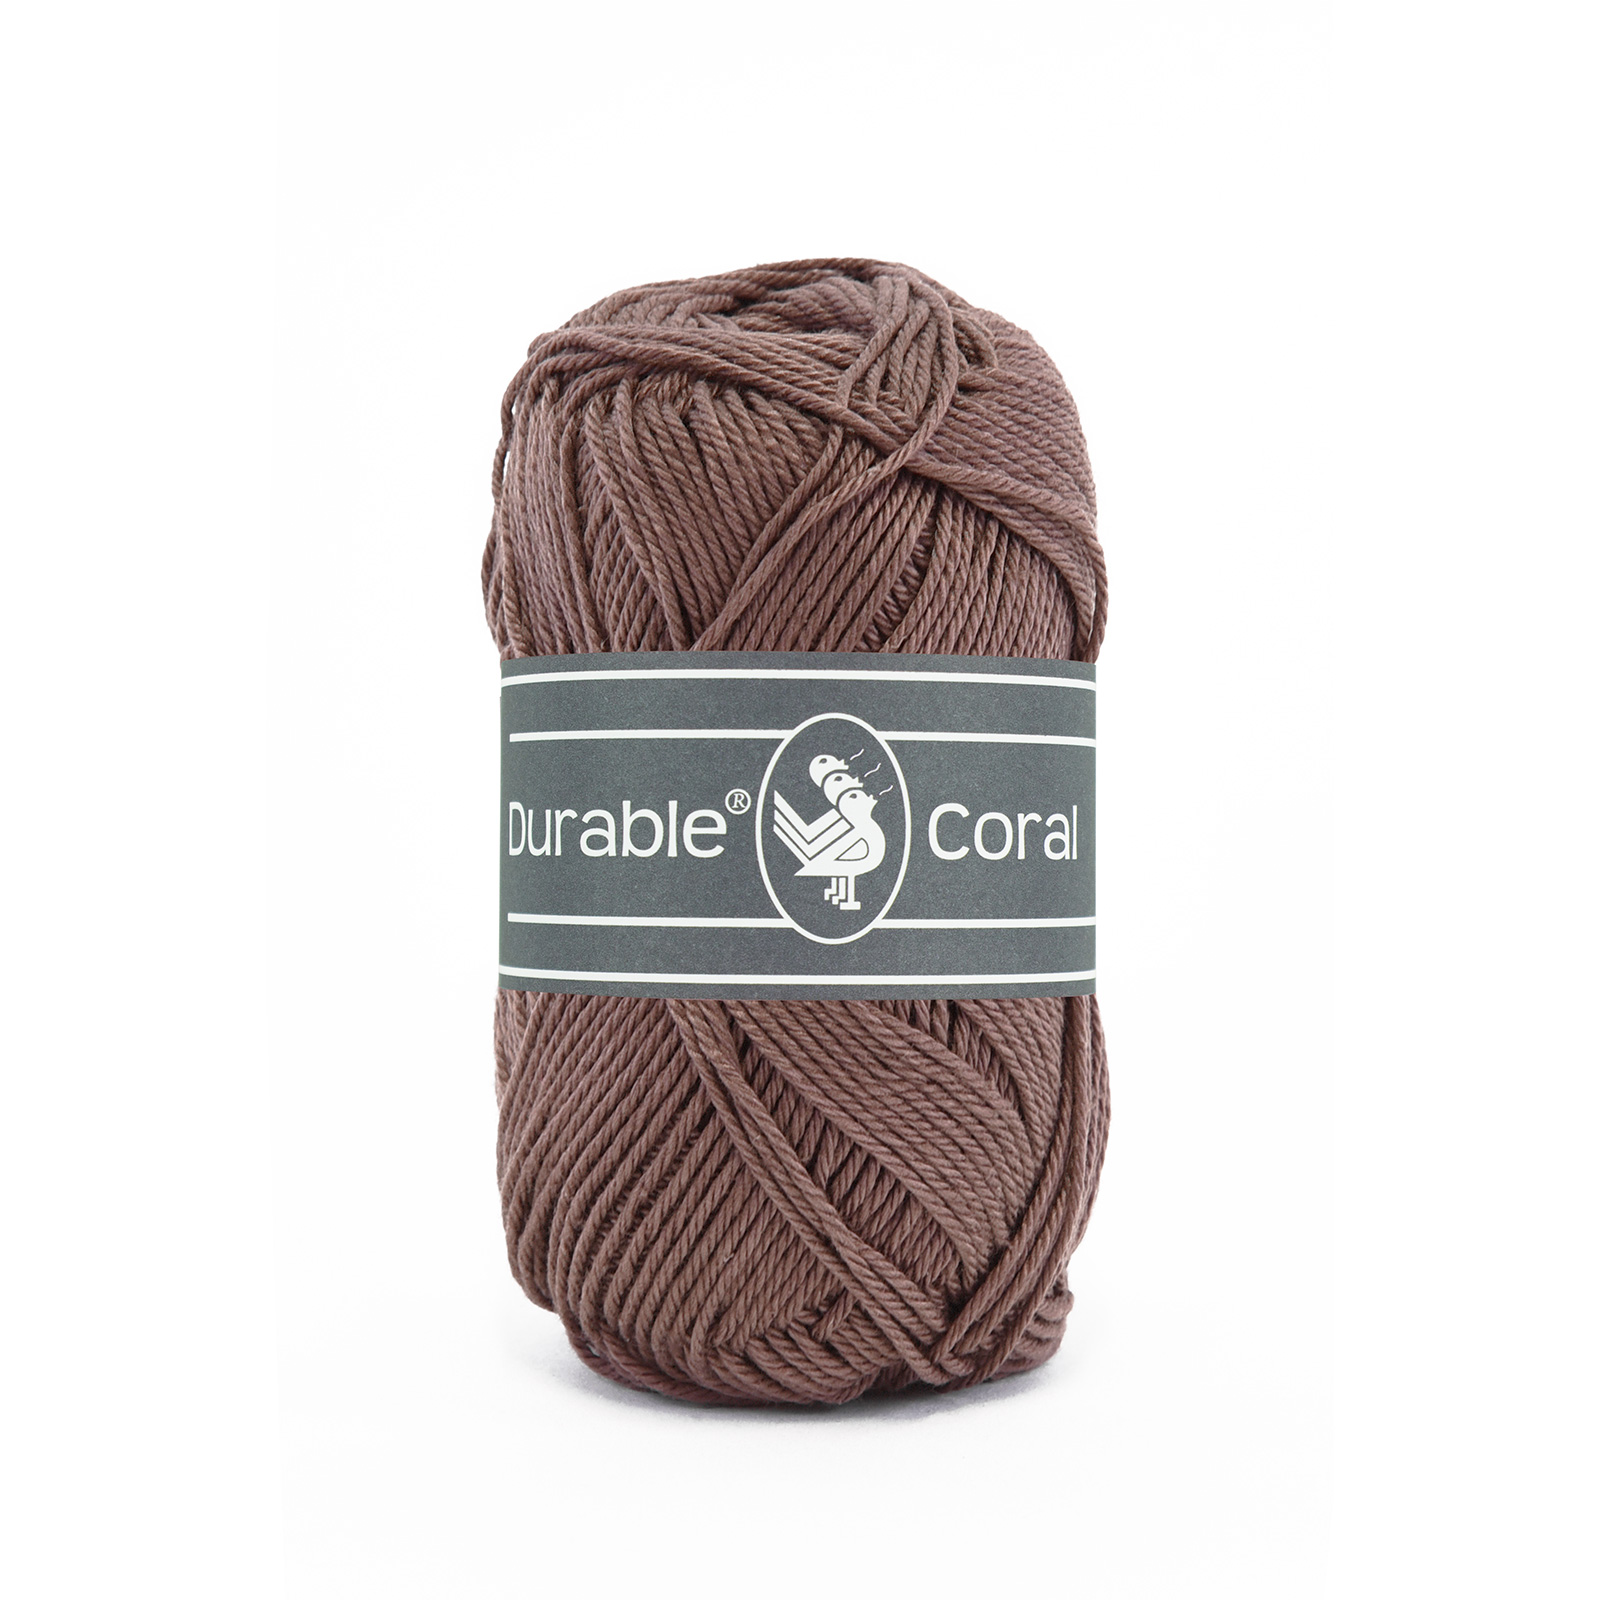 Durable Coral – 2229 Chocolate